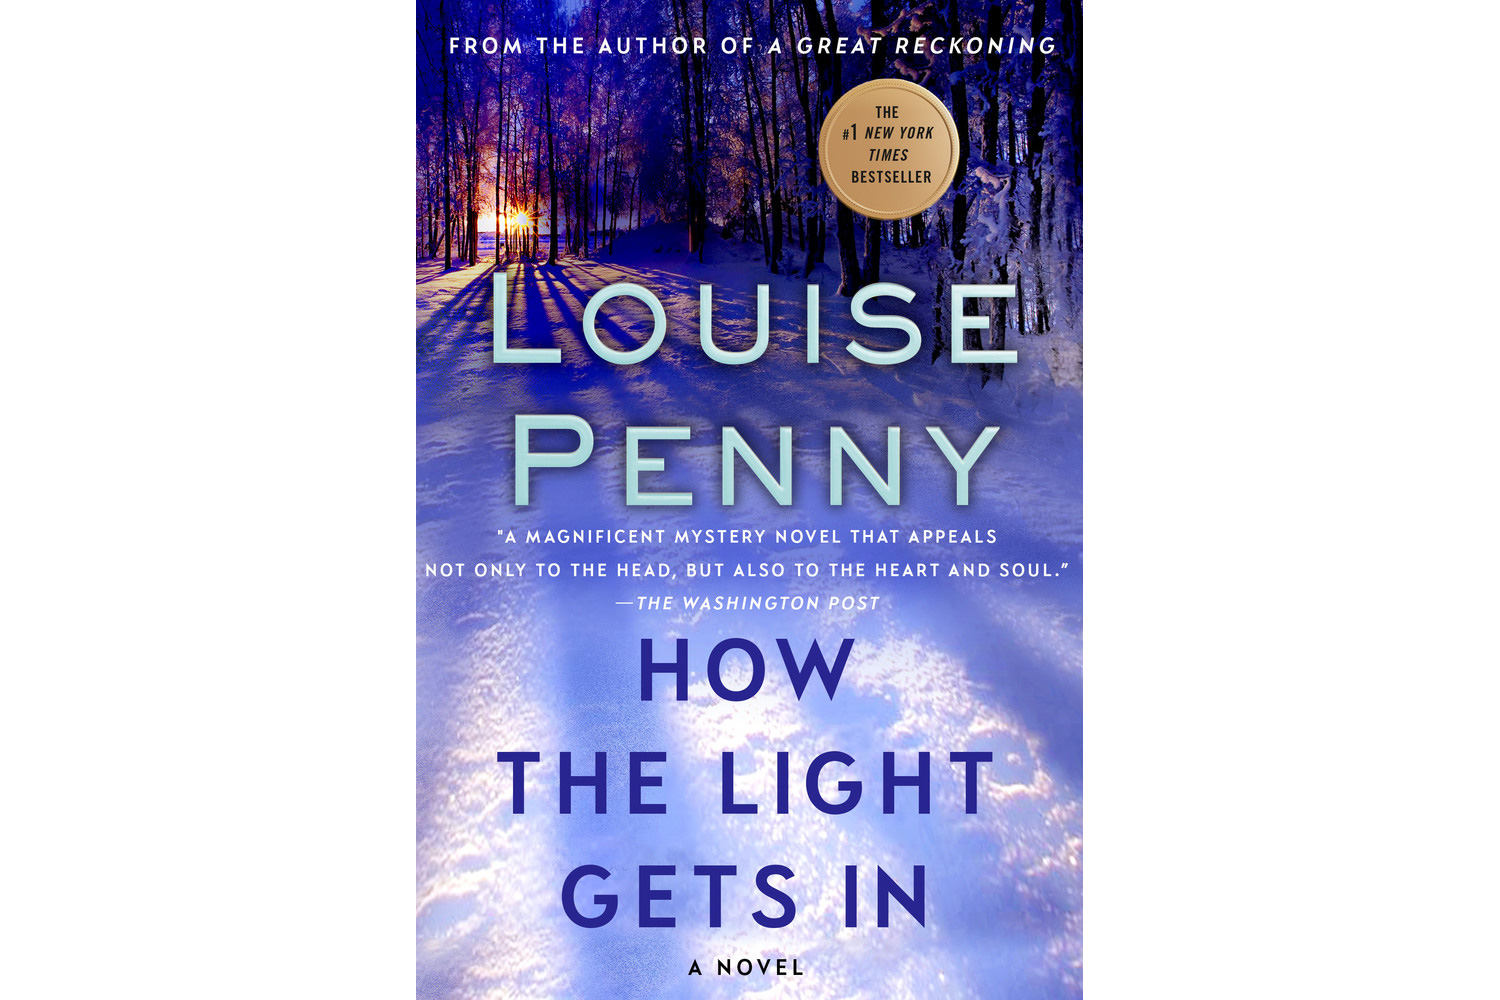 How the Light Gets In, by Louise Penny